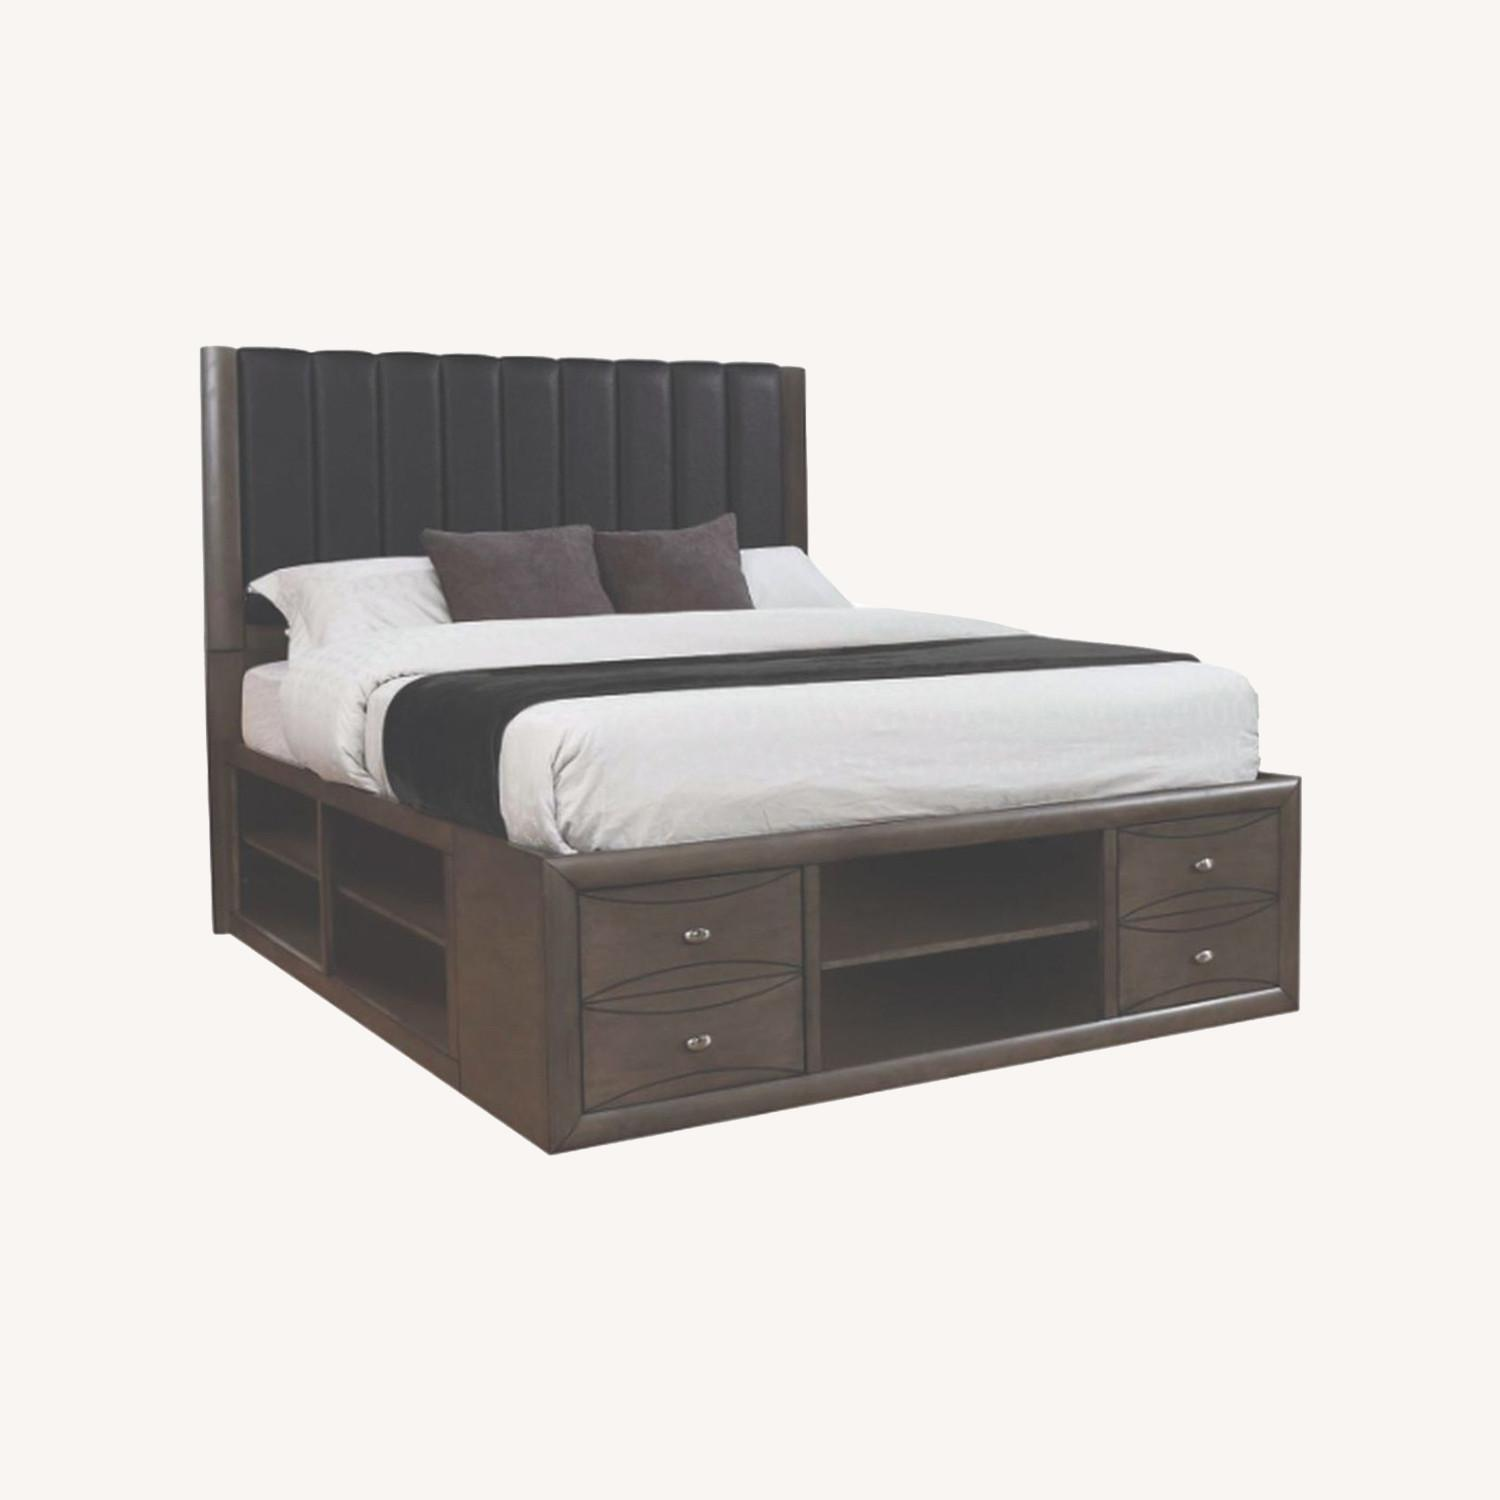 Queen Bed In A Coco Grey Finish - image-3